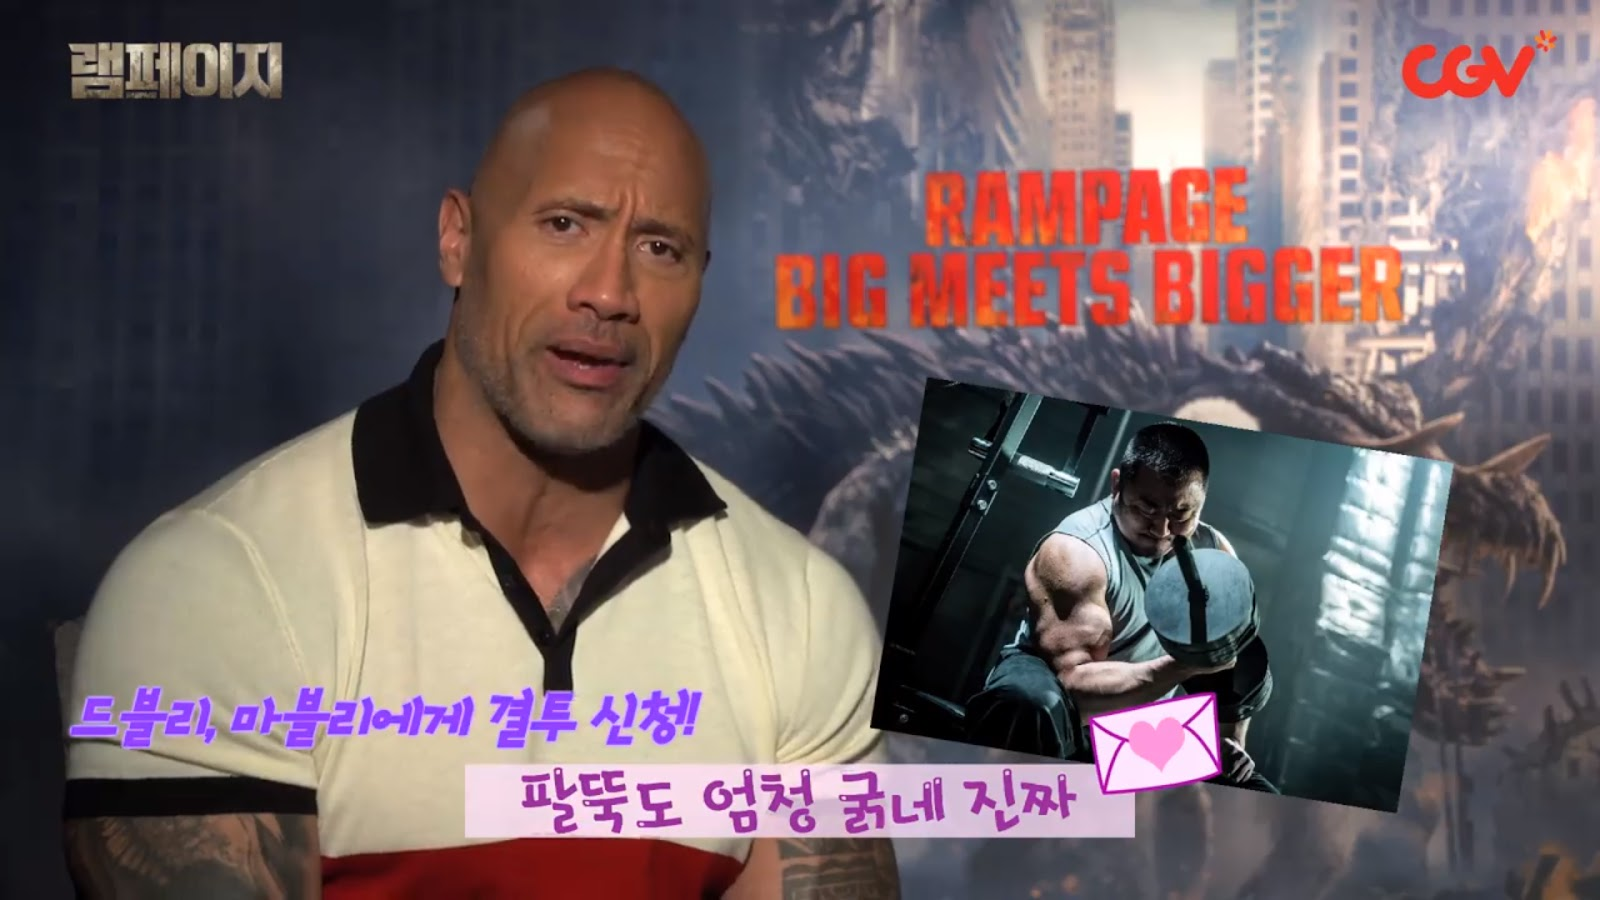 Dwayne Johnson Challenges Ma Dong Suk To An Arm Wrestle Match